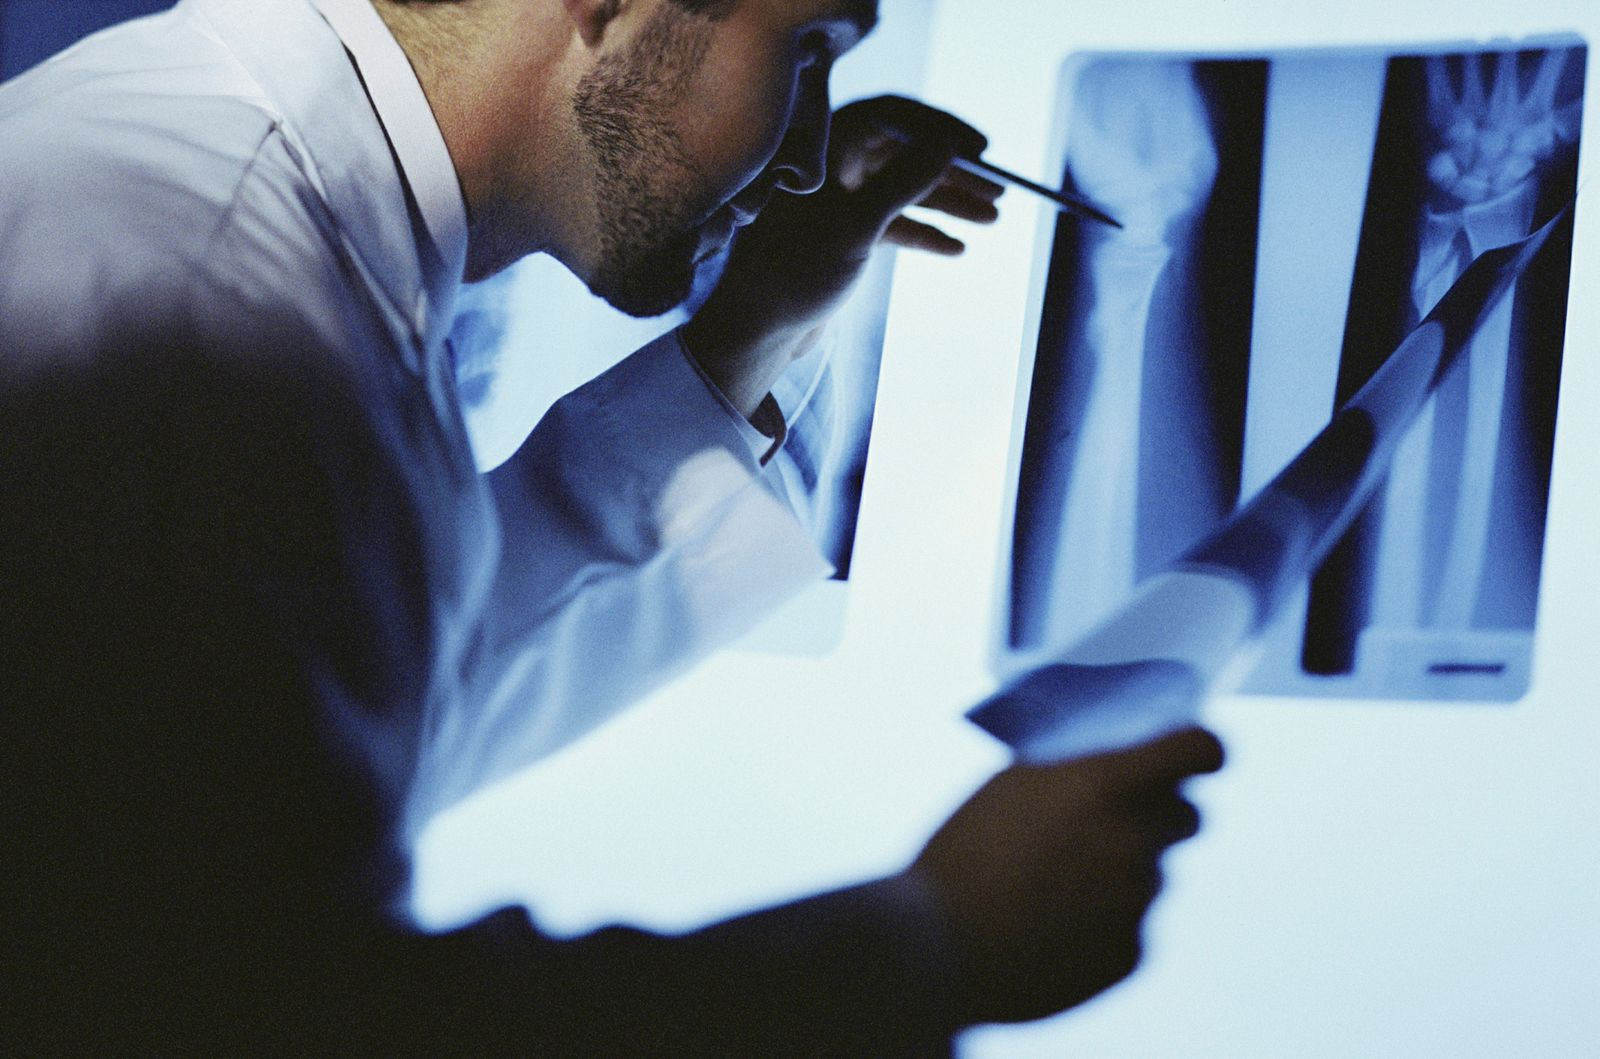 A male doctor looking at x-rays